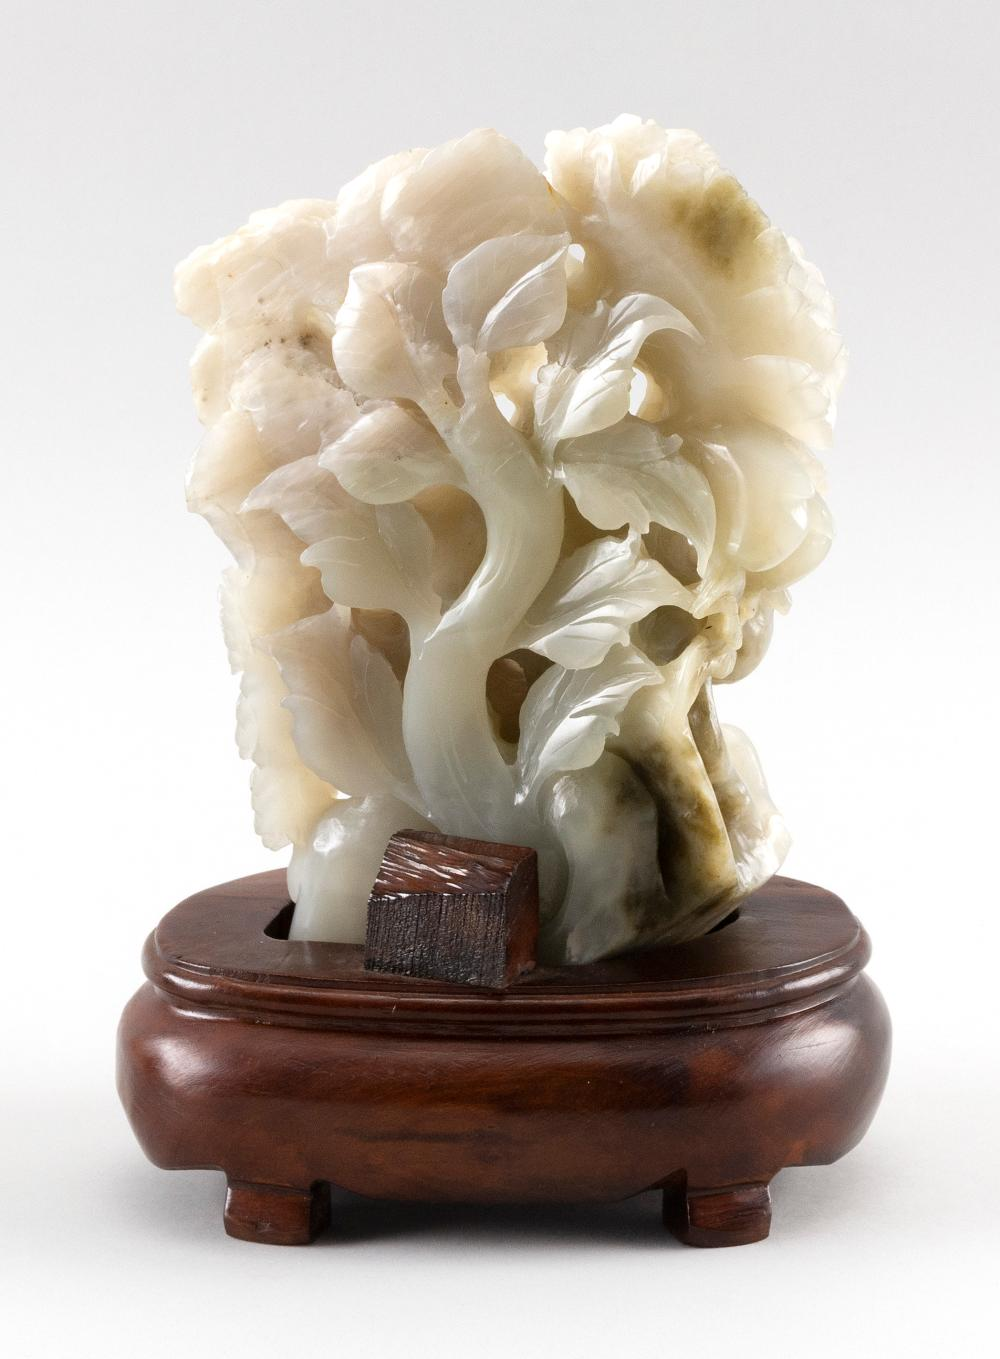 CHINESE WHITE JADE CARVING Depicts flowers, fruits and birds. Height 8